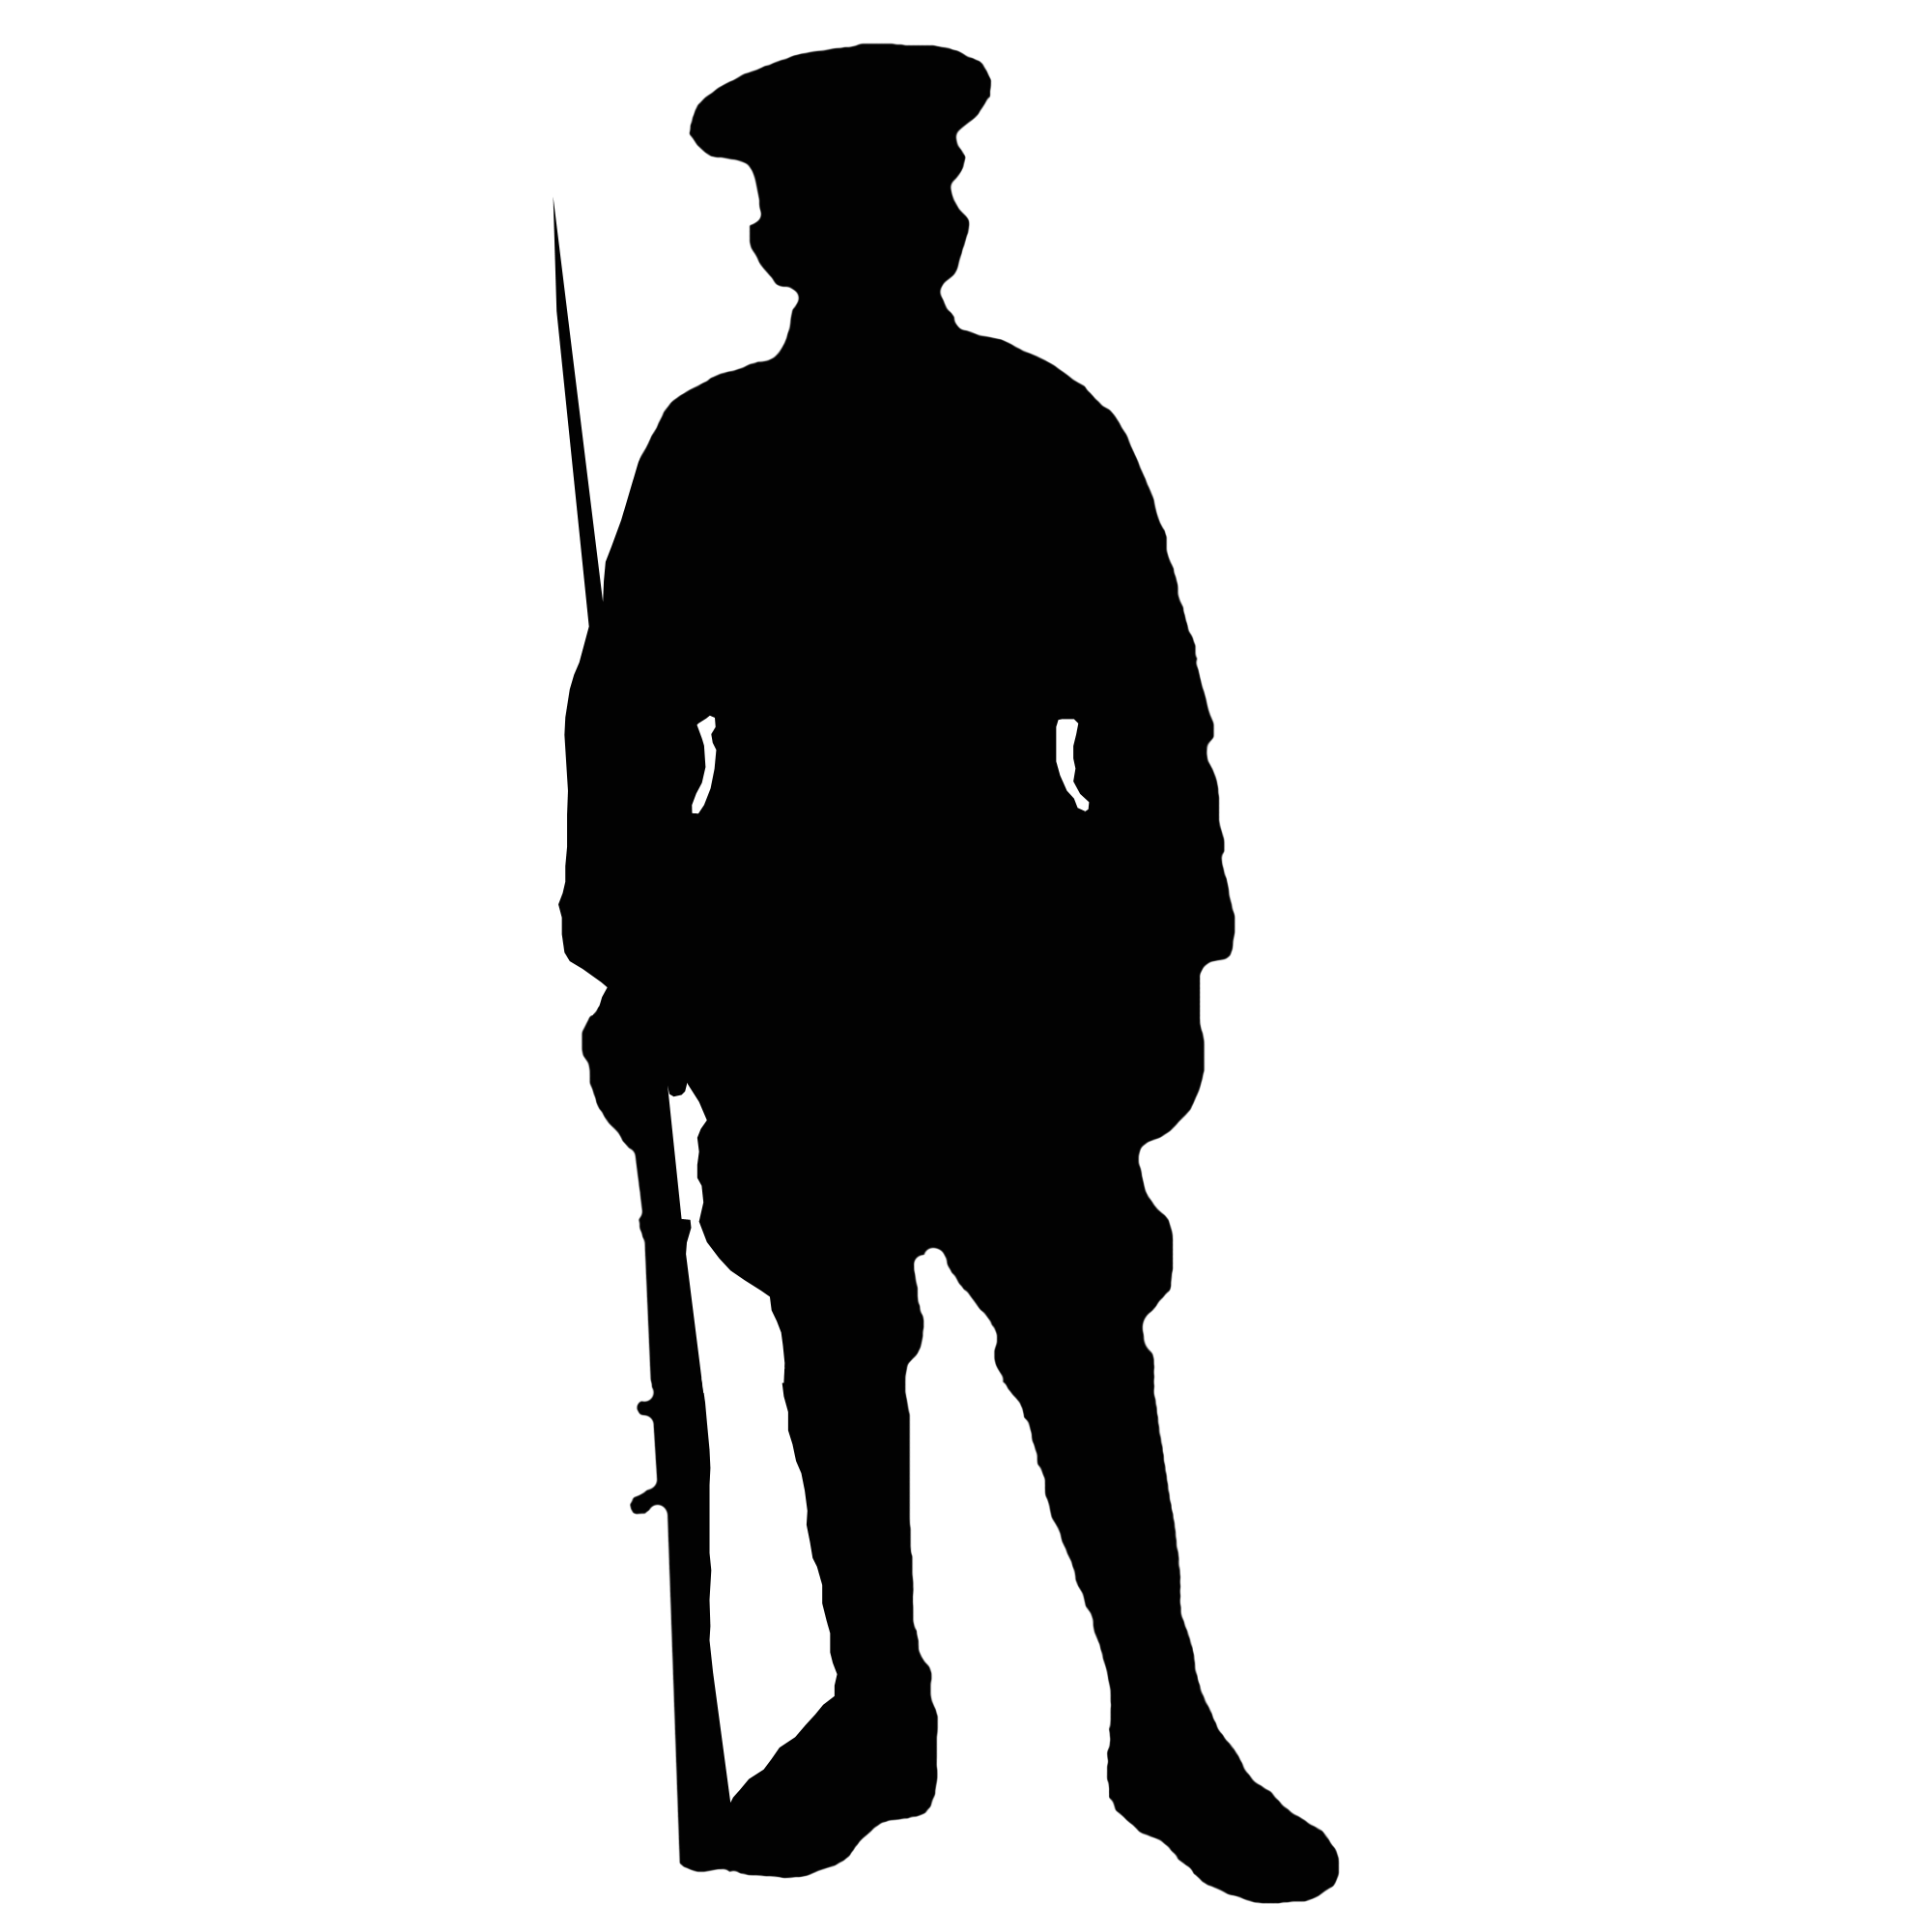 silhouette of soldier free saluting soldier silhouette free vector download soldier of silhouette